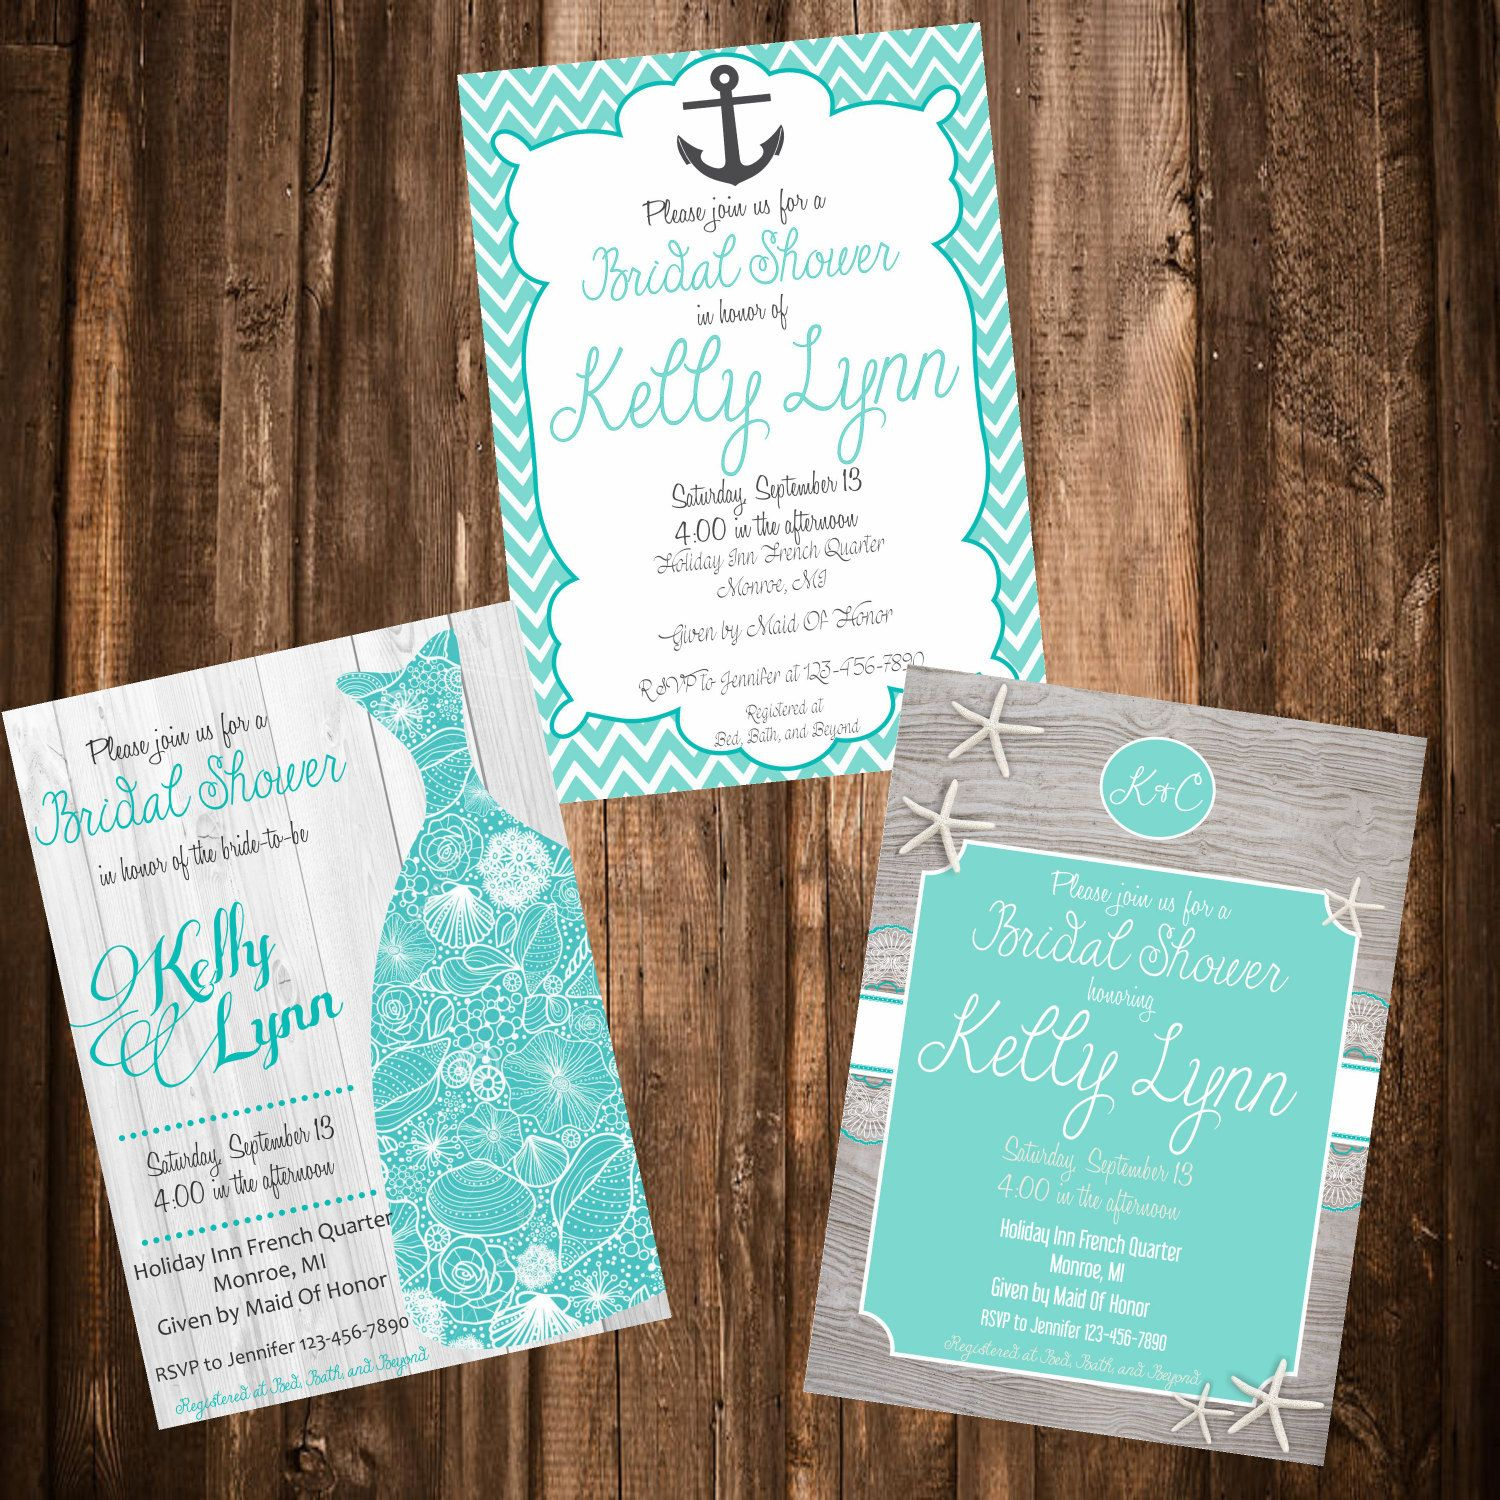 ideas for handmade bridal shower invitations%0A Image result for white beach party invitation design   Nikki Beach  invitation design   Pinterest   Beach party invitations and Invitation  design